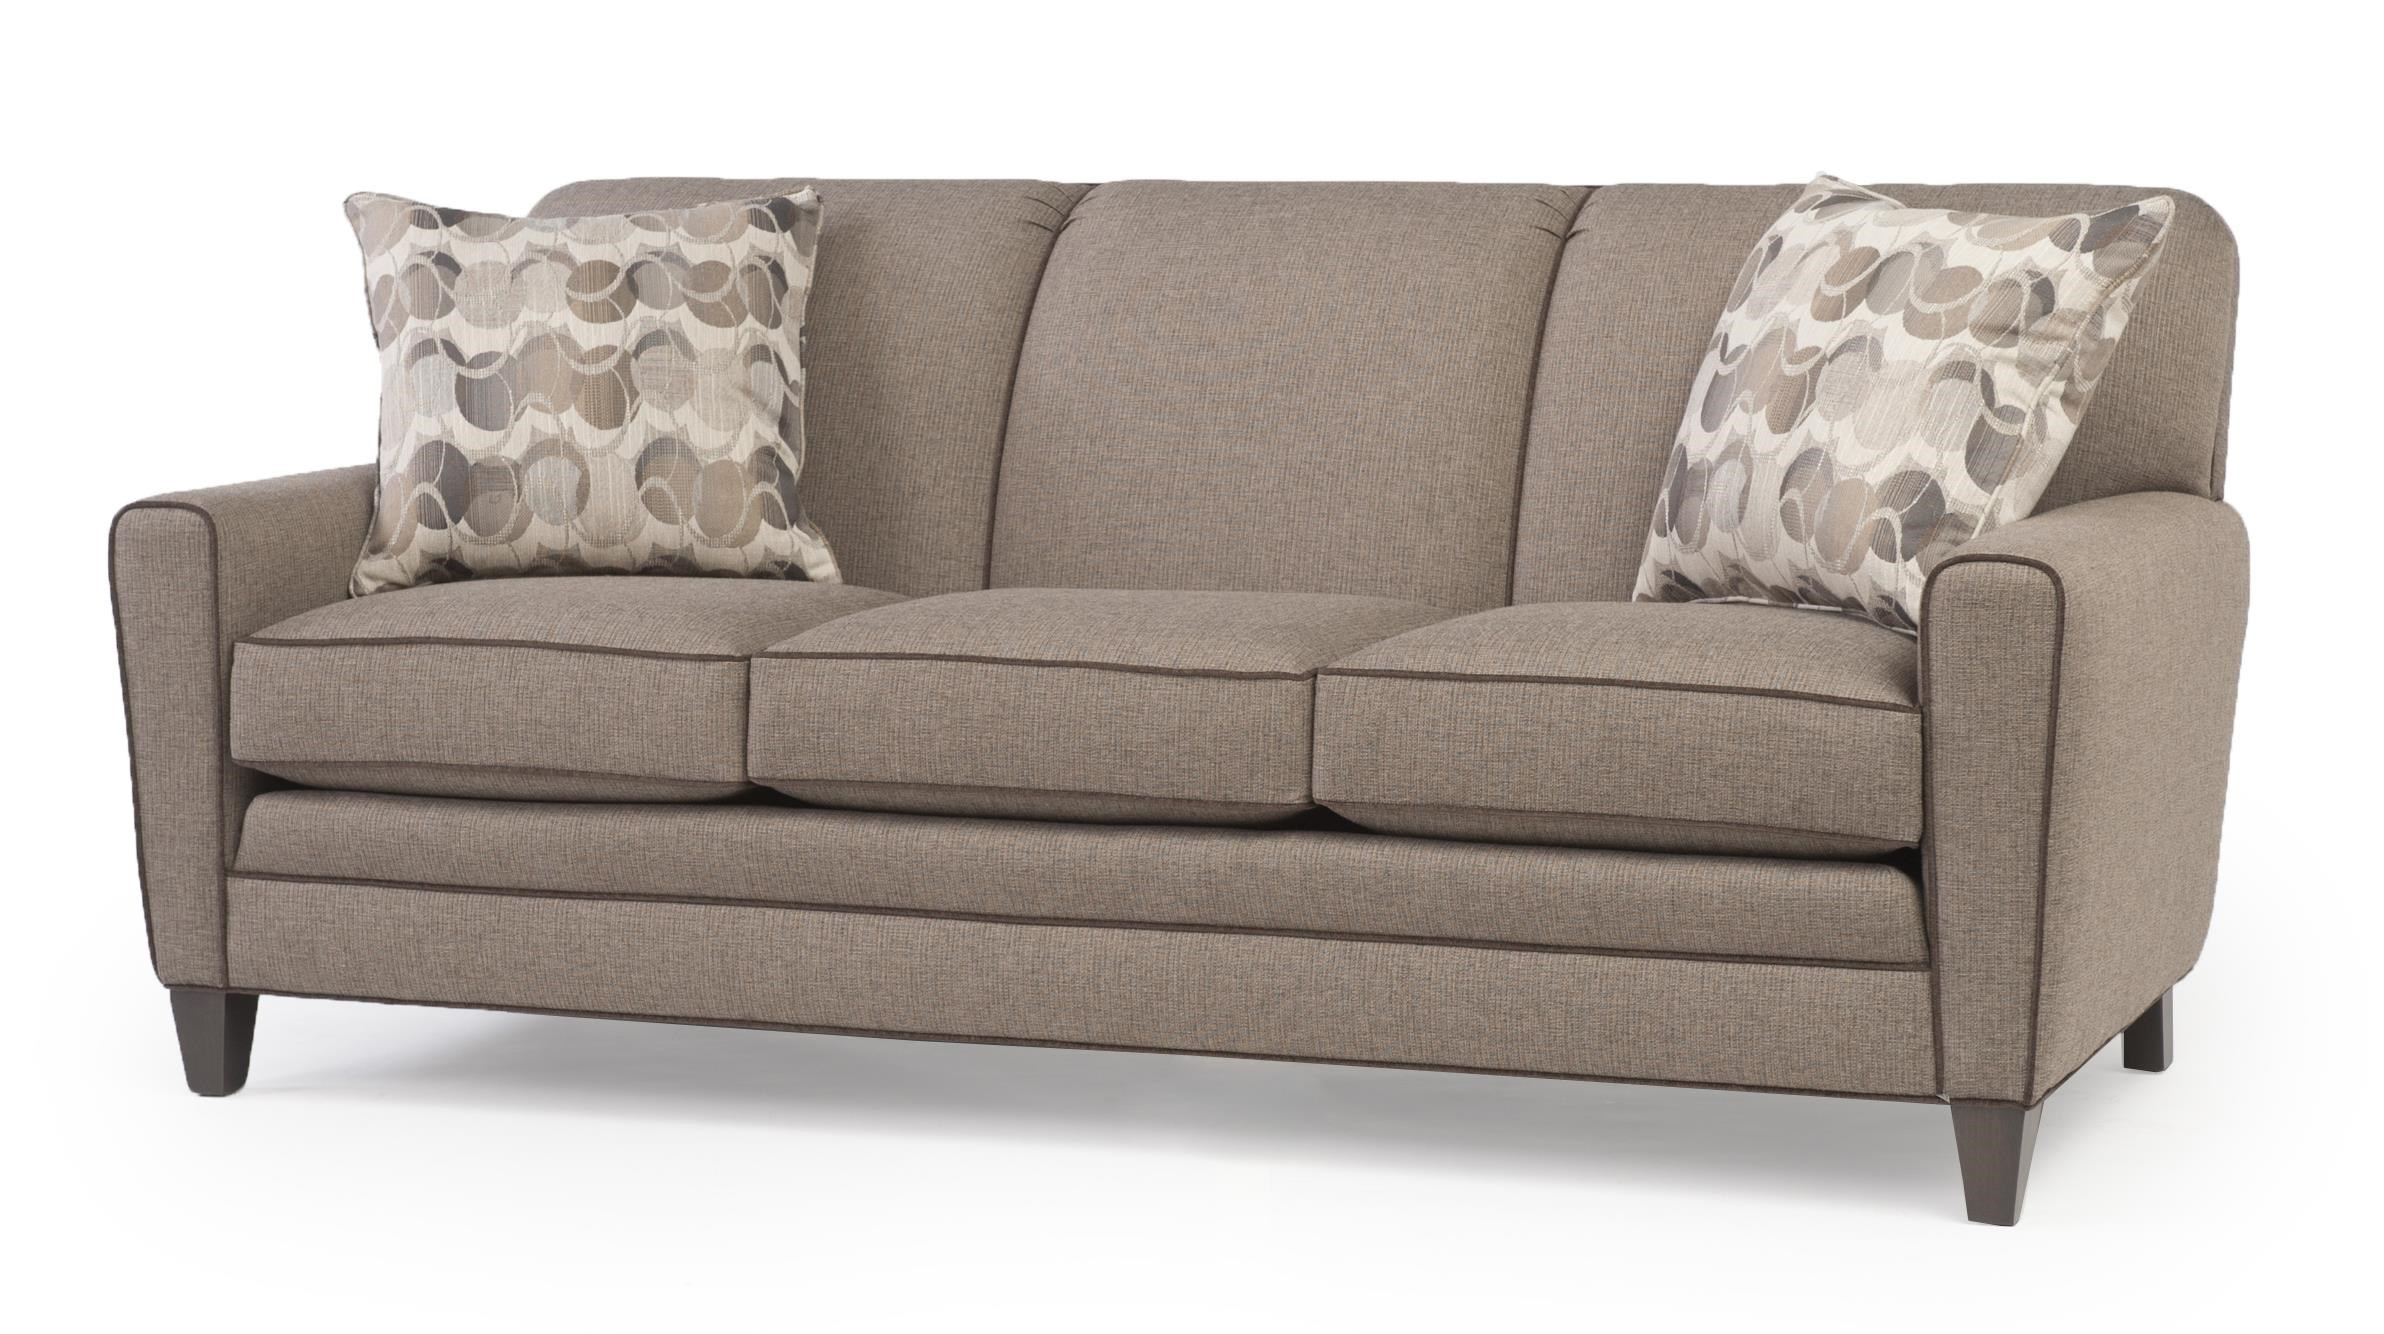 Smith Brothers 225 Sofa With Tapered Track Arms Saugerties